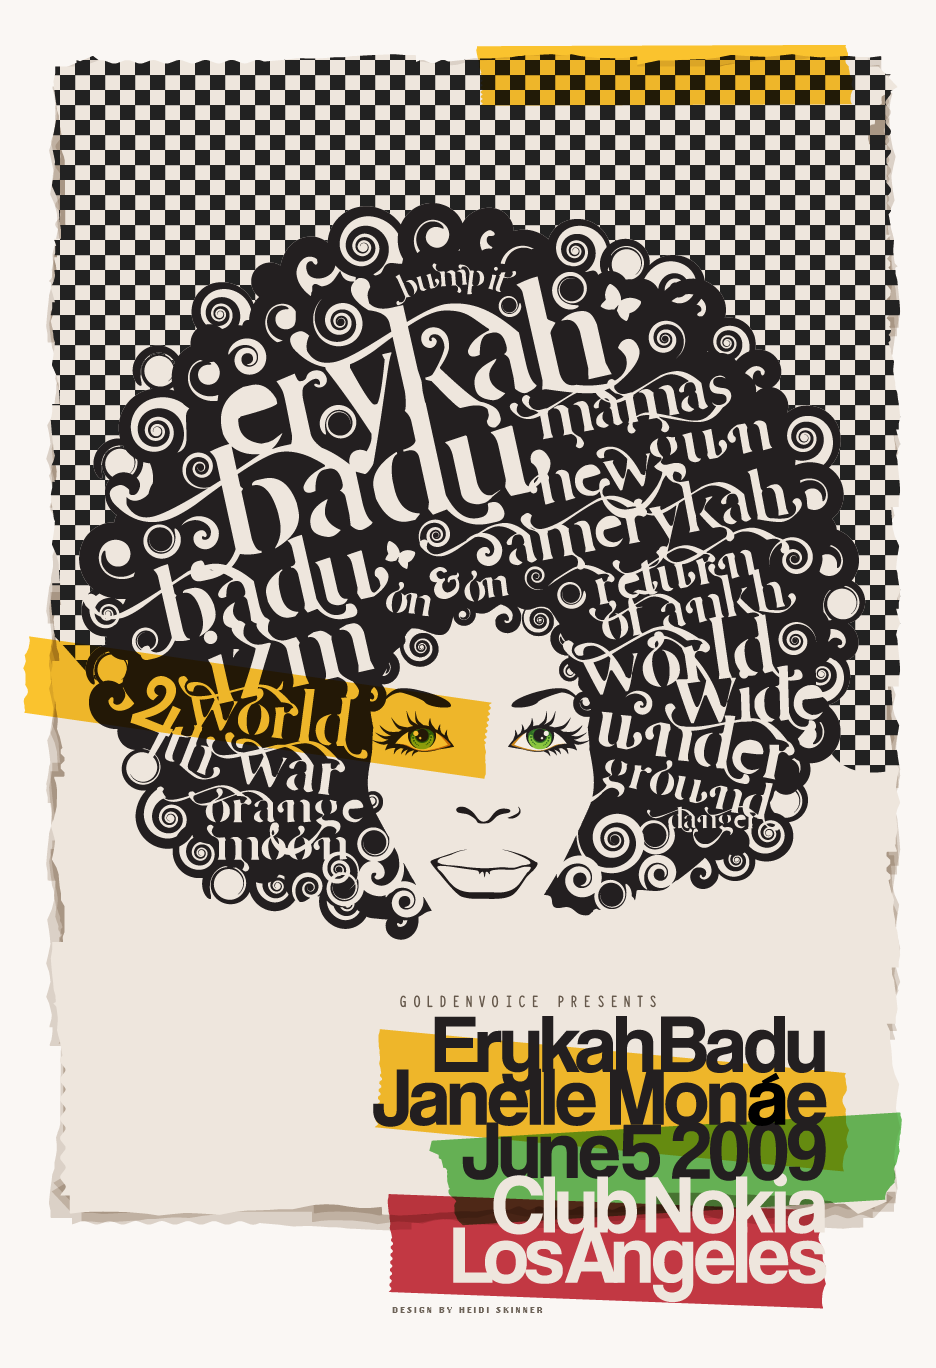 Vector illustration of Erykah Badu concert poster feat. Janelle Monae / Design by Heidi Skinner